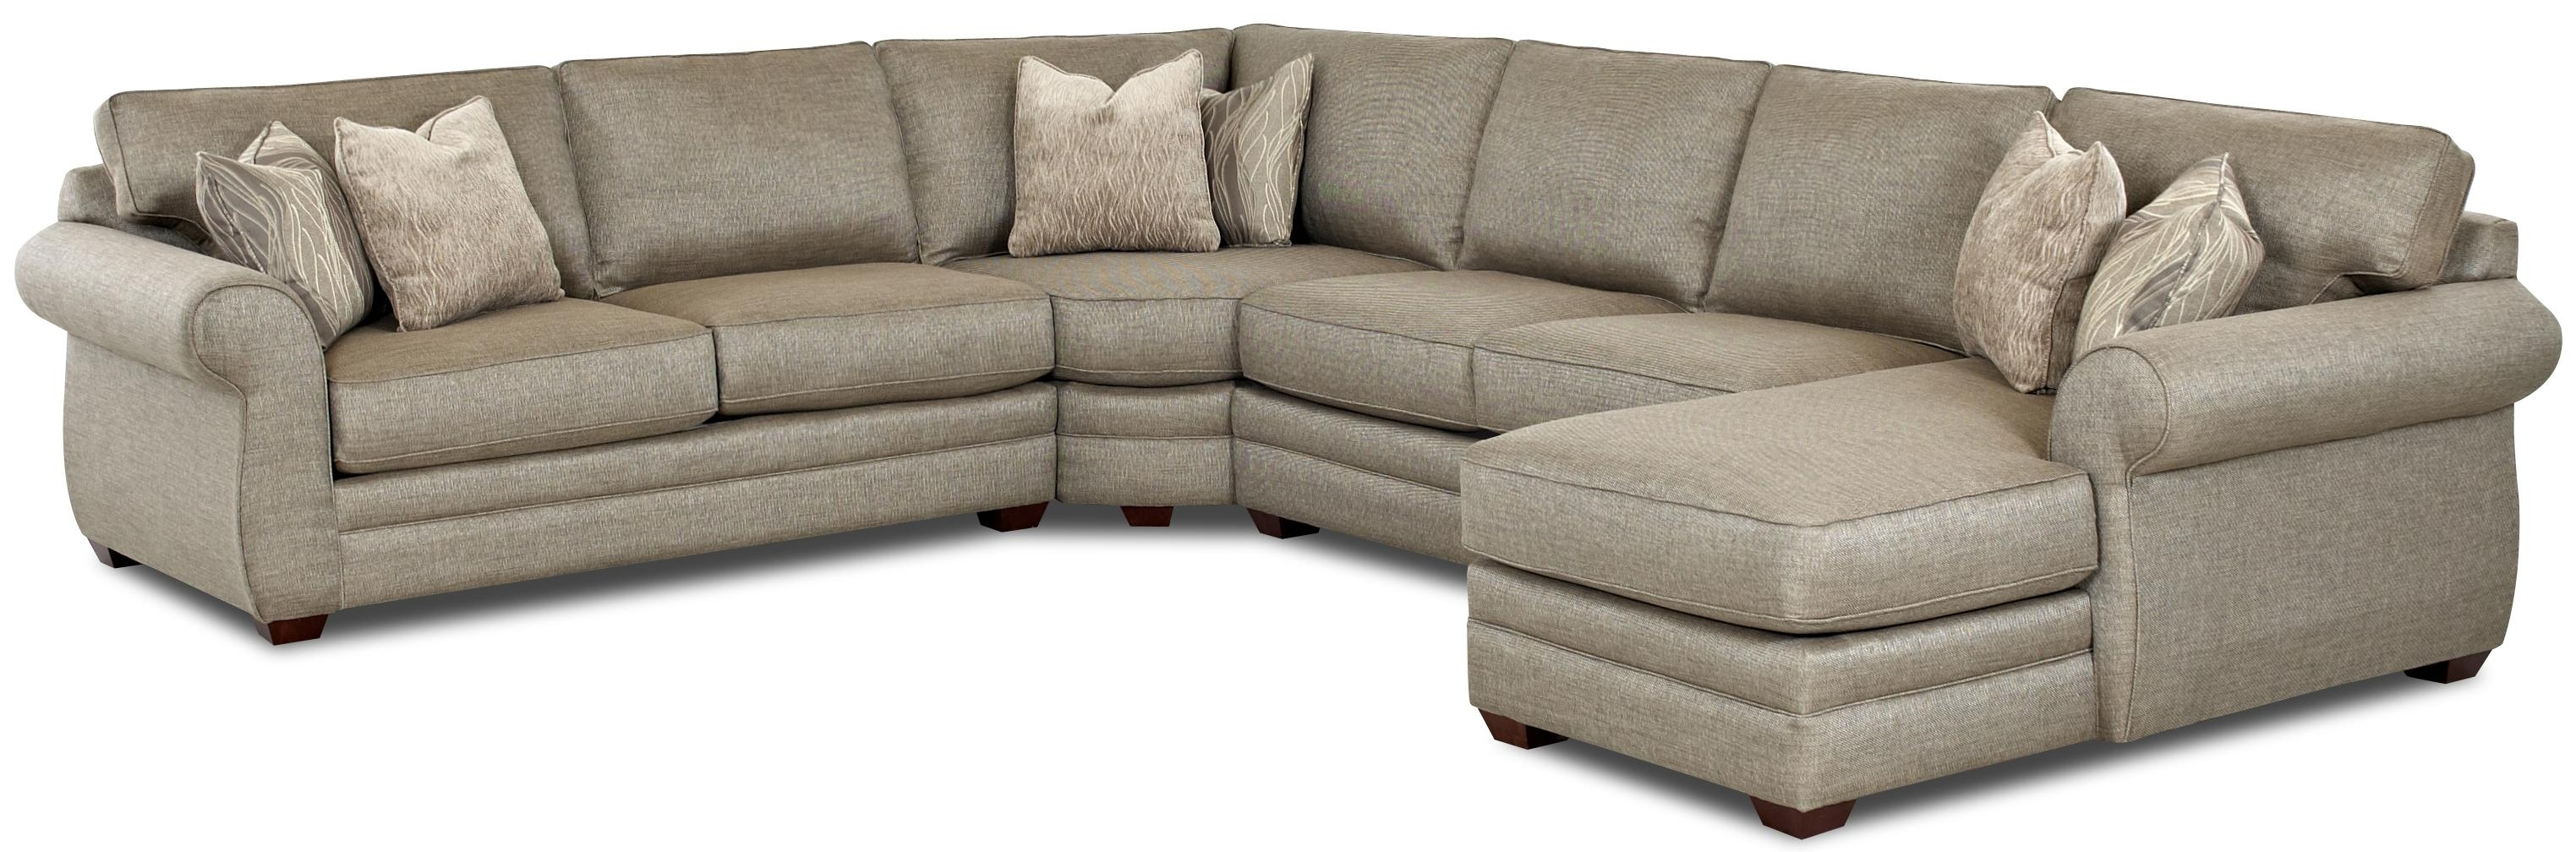 Sectional Sofa With Chaise - Talentneeds - for Meyer 3 Piece Sectionals With Laf Chaise (Image 22 of 30)